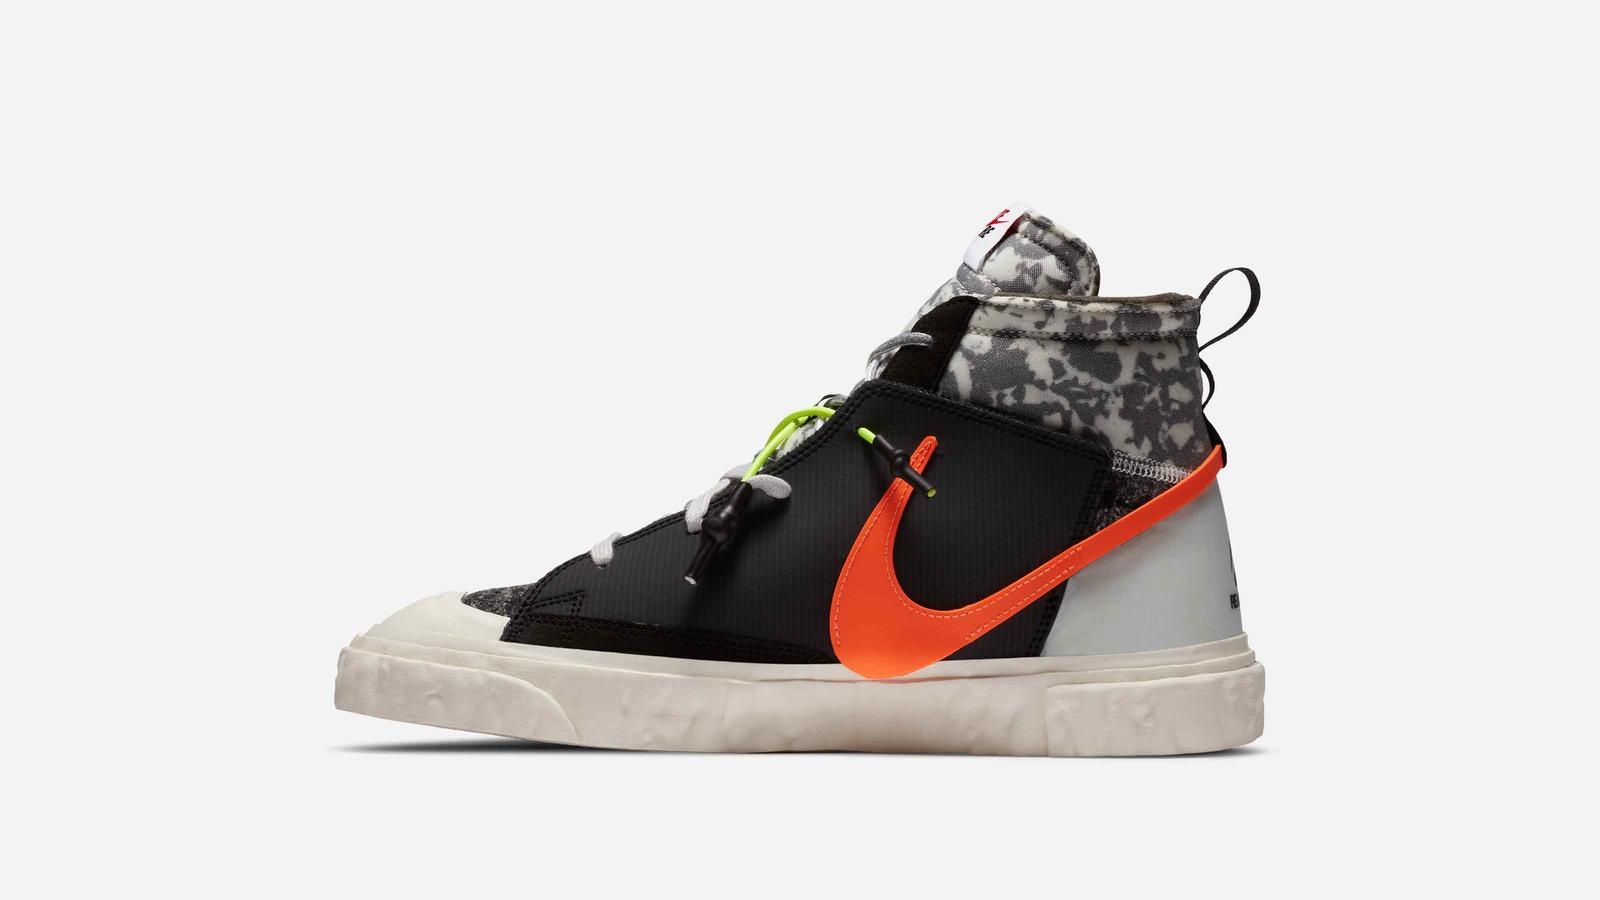 Nike x READYMADE Blazer Mid Official Images Release Date - Nike News